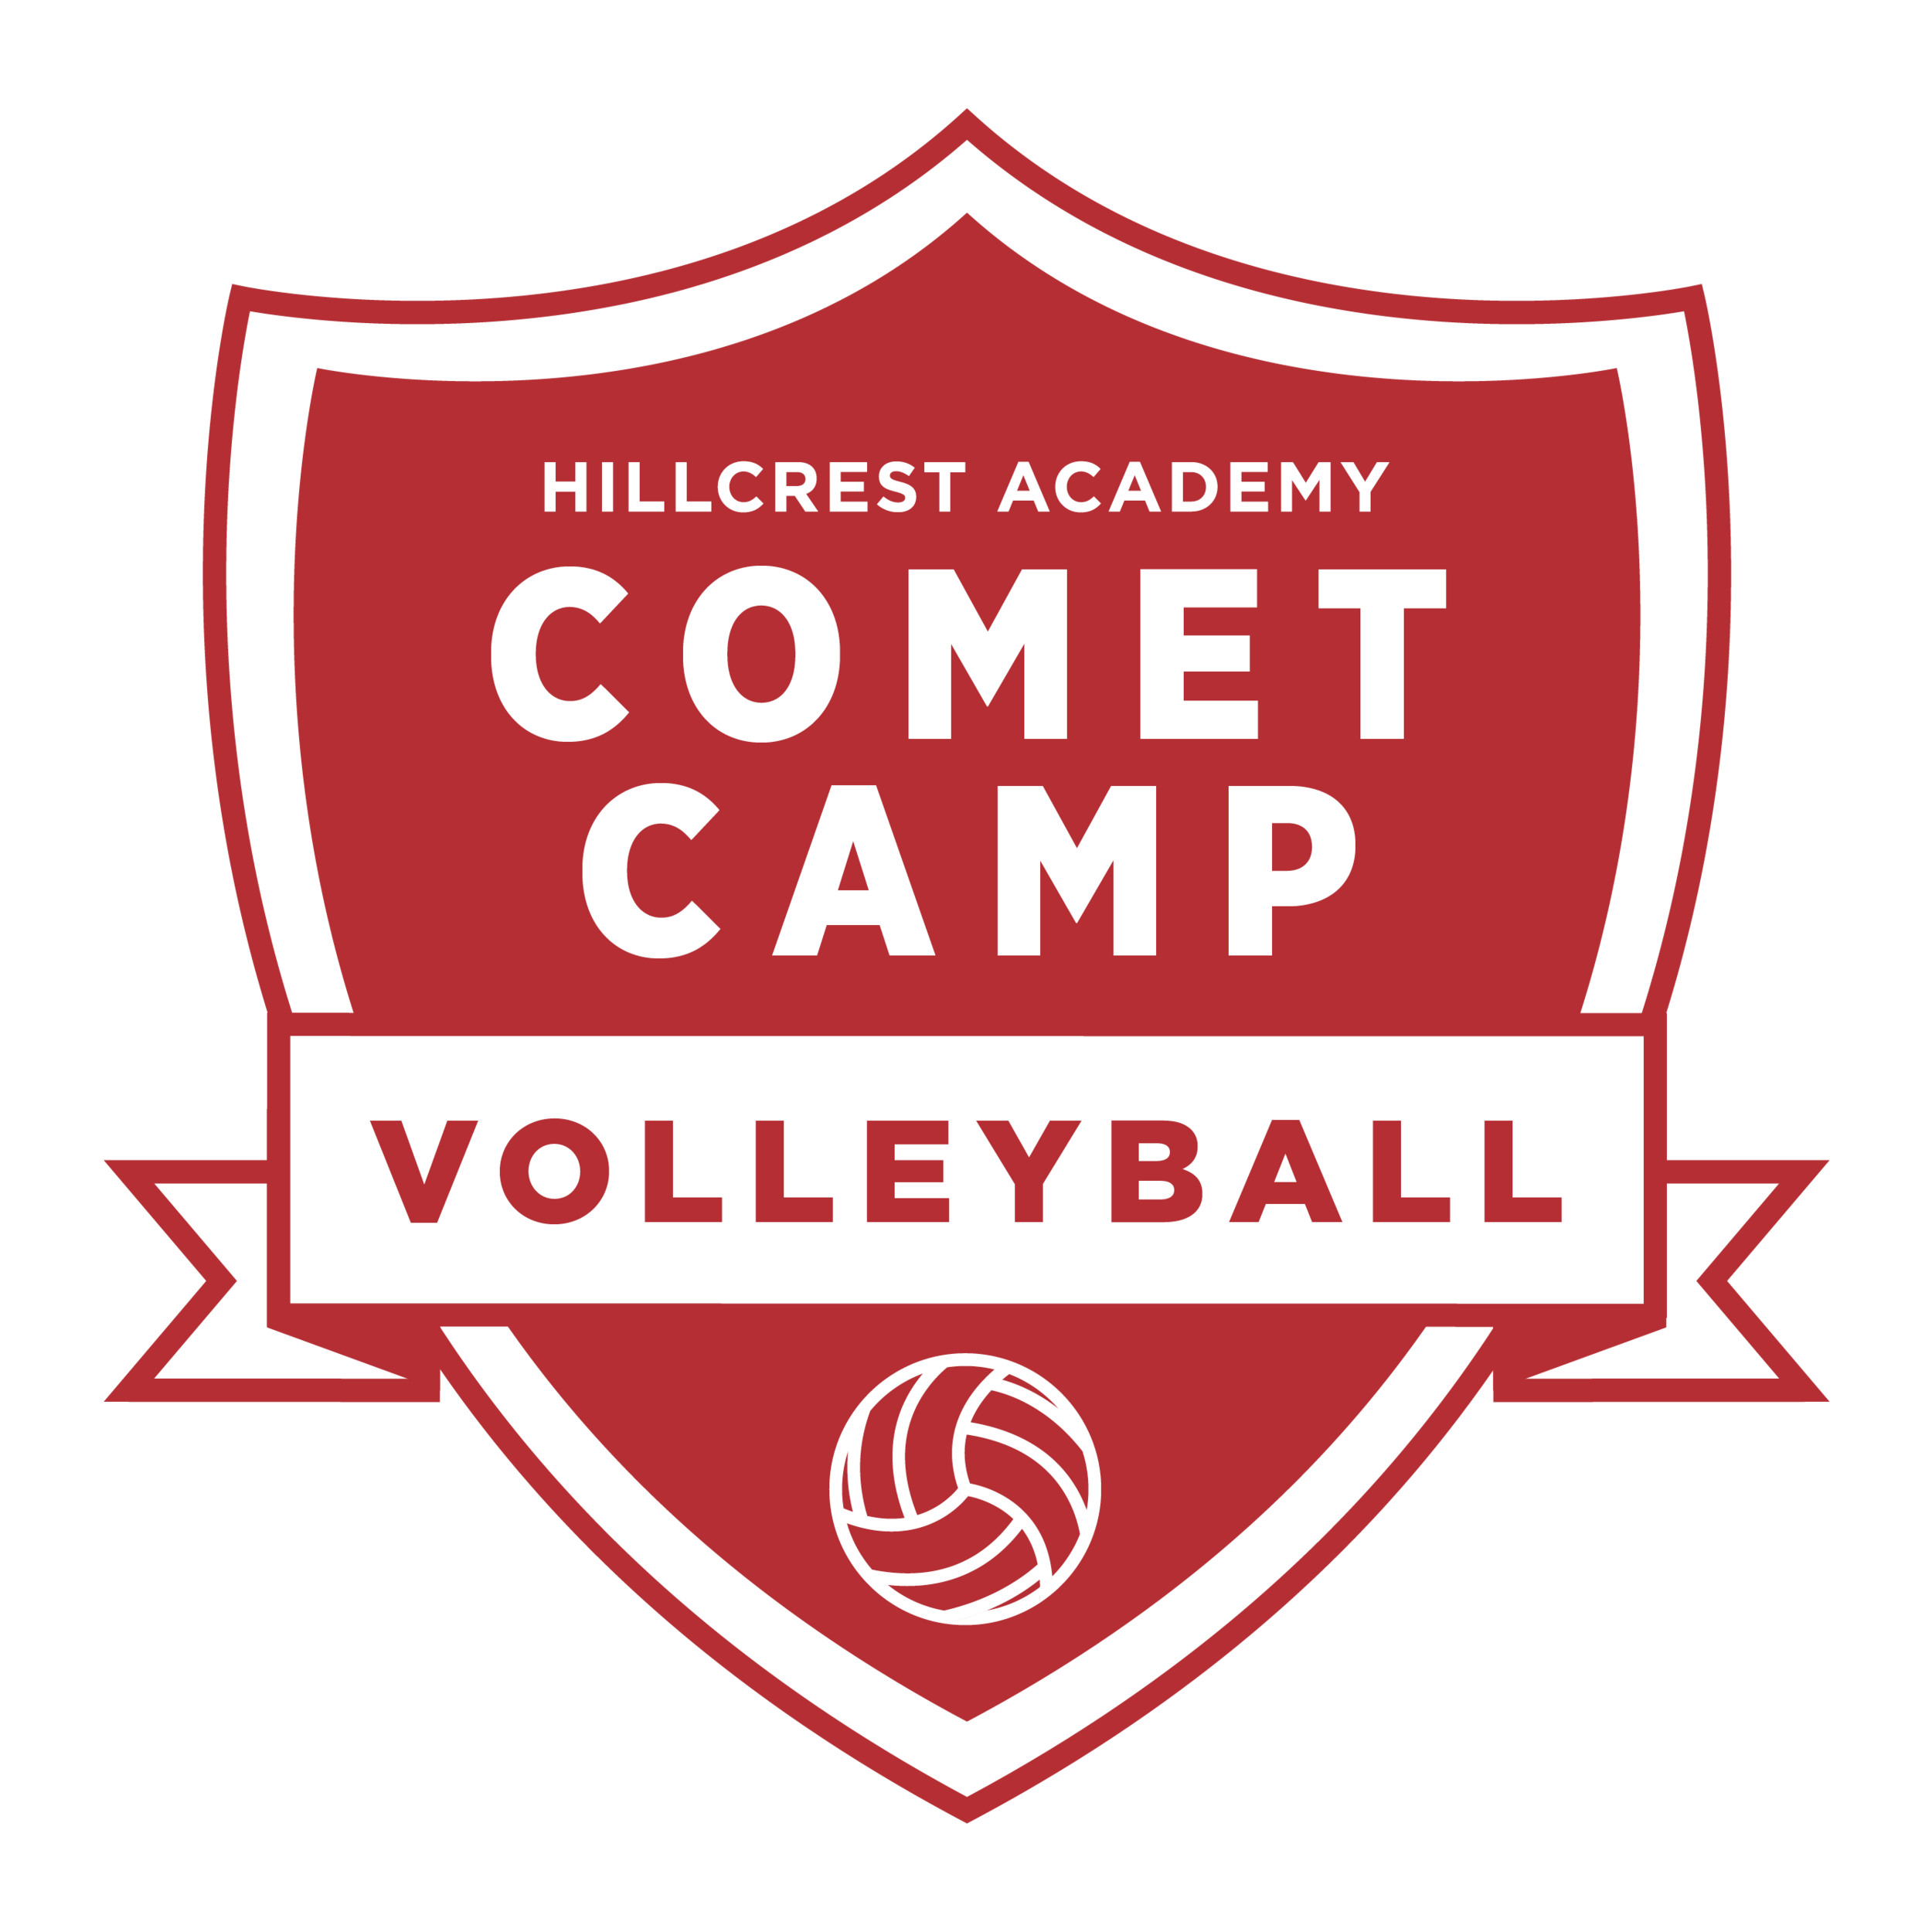 19_011_Comet_Camp_Branding_VBALL_640px.png